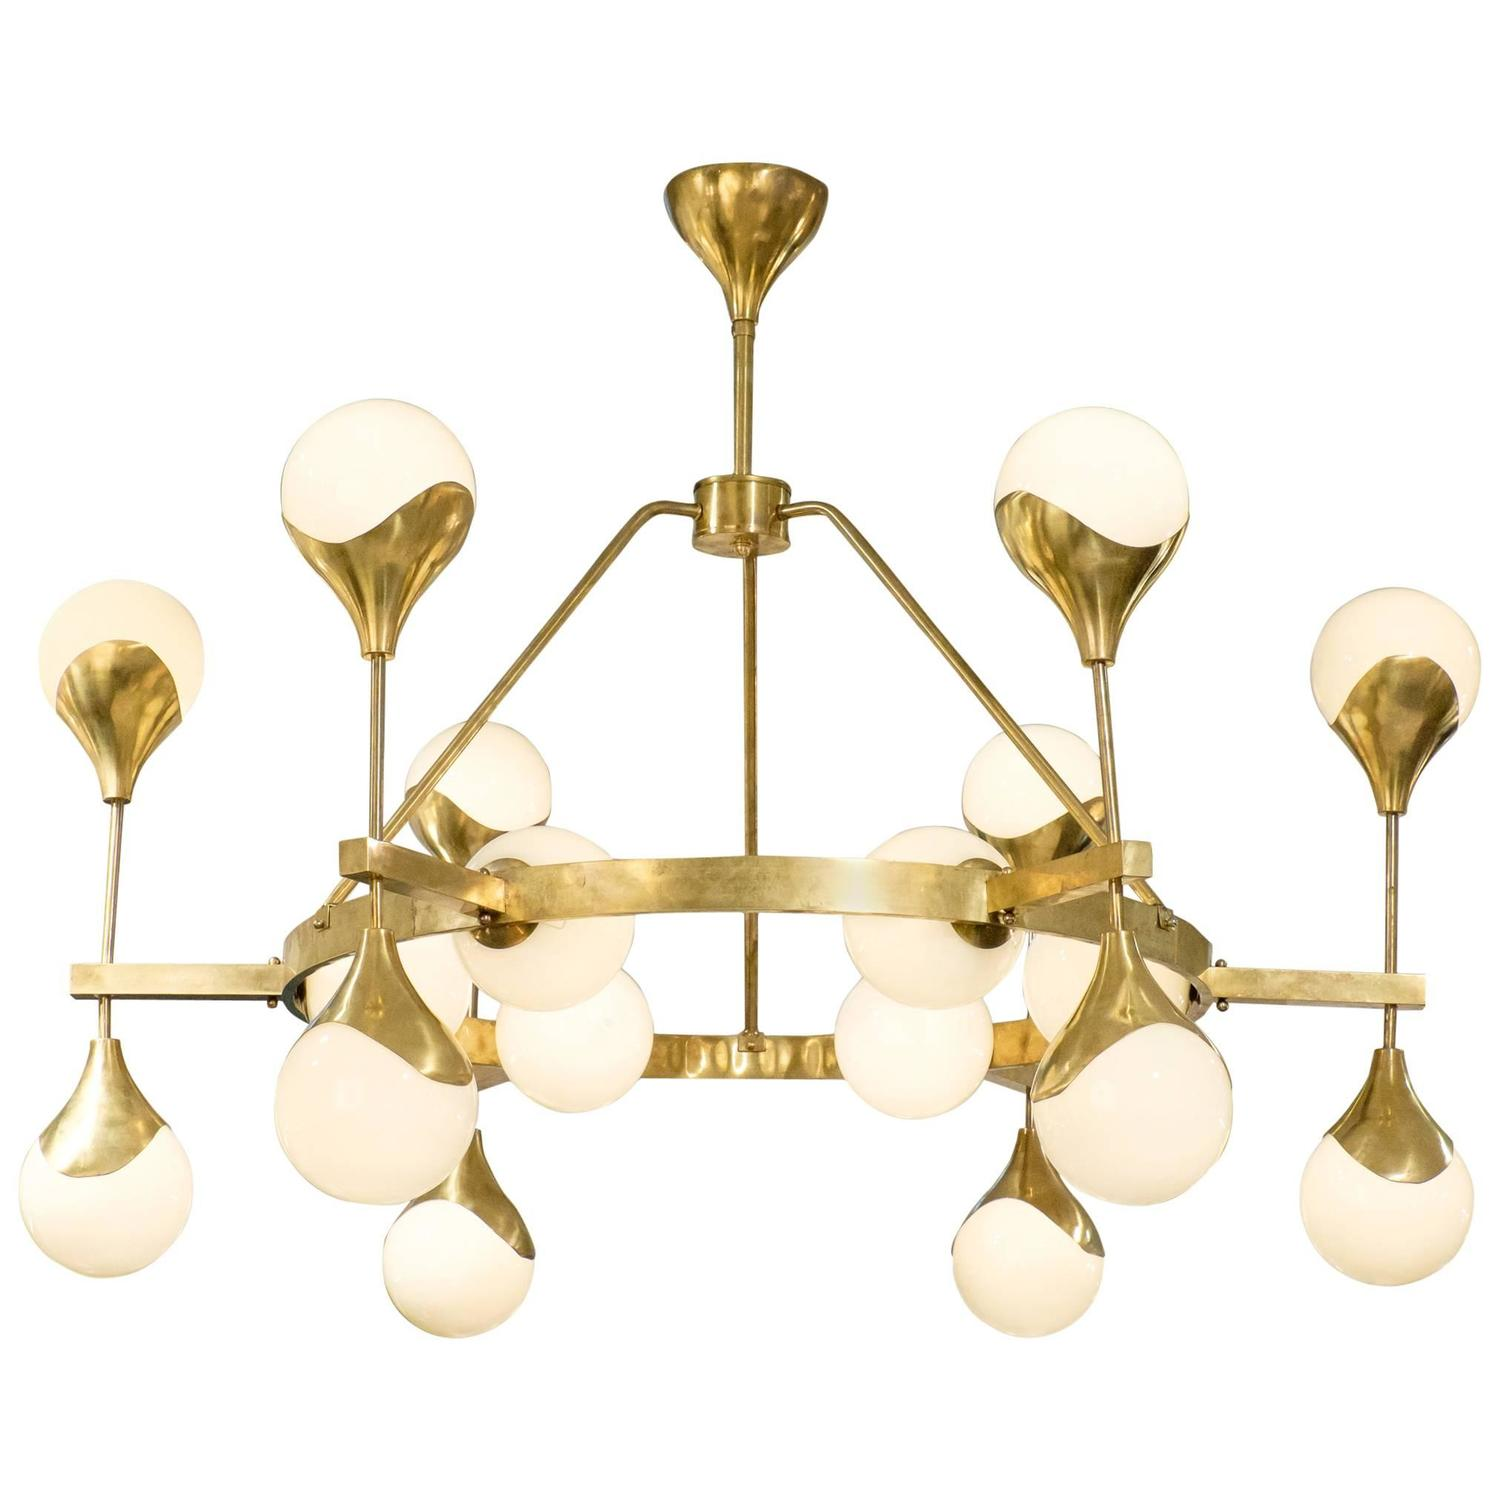 Murano Globe Glass And Textured Brass Chandelier For Sale